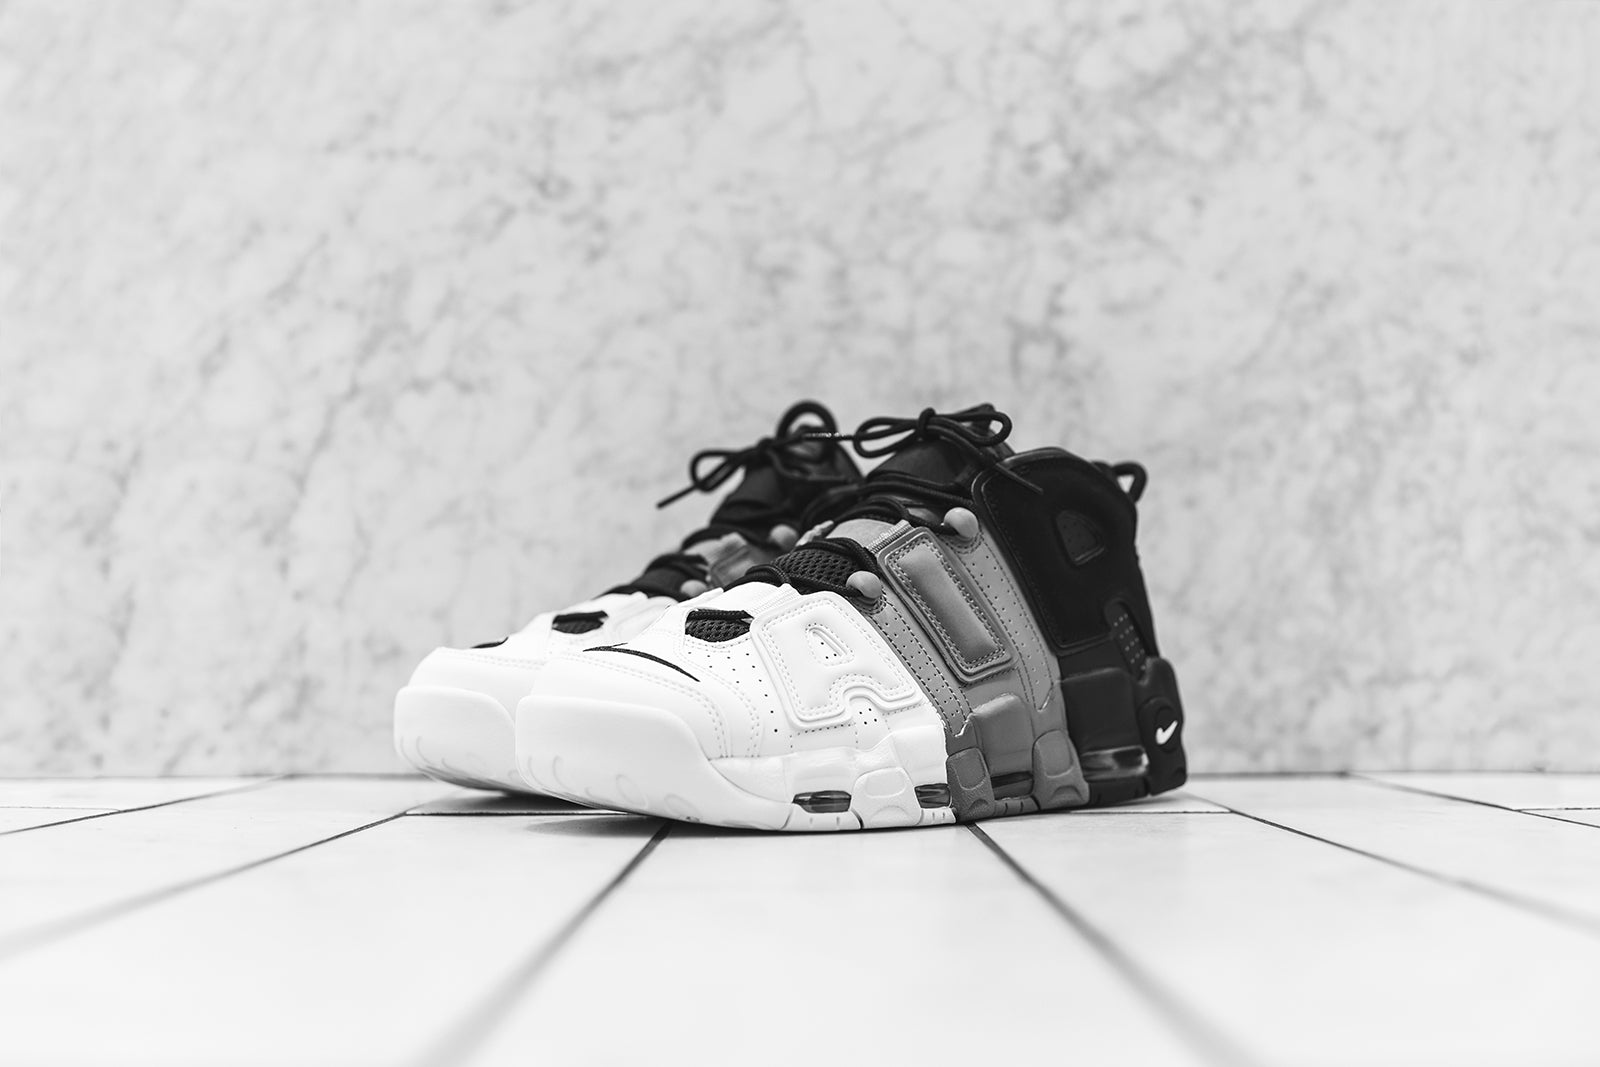 77e148de76 Nike Air More Uptempo '96 - Black / White. August 12, 2017. -3. -1. -2